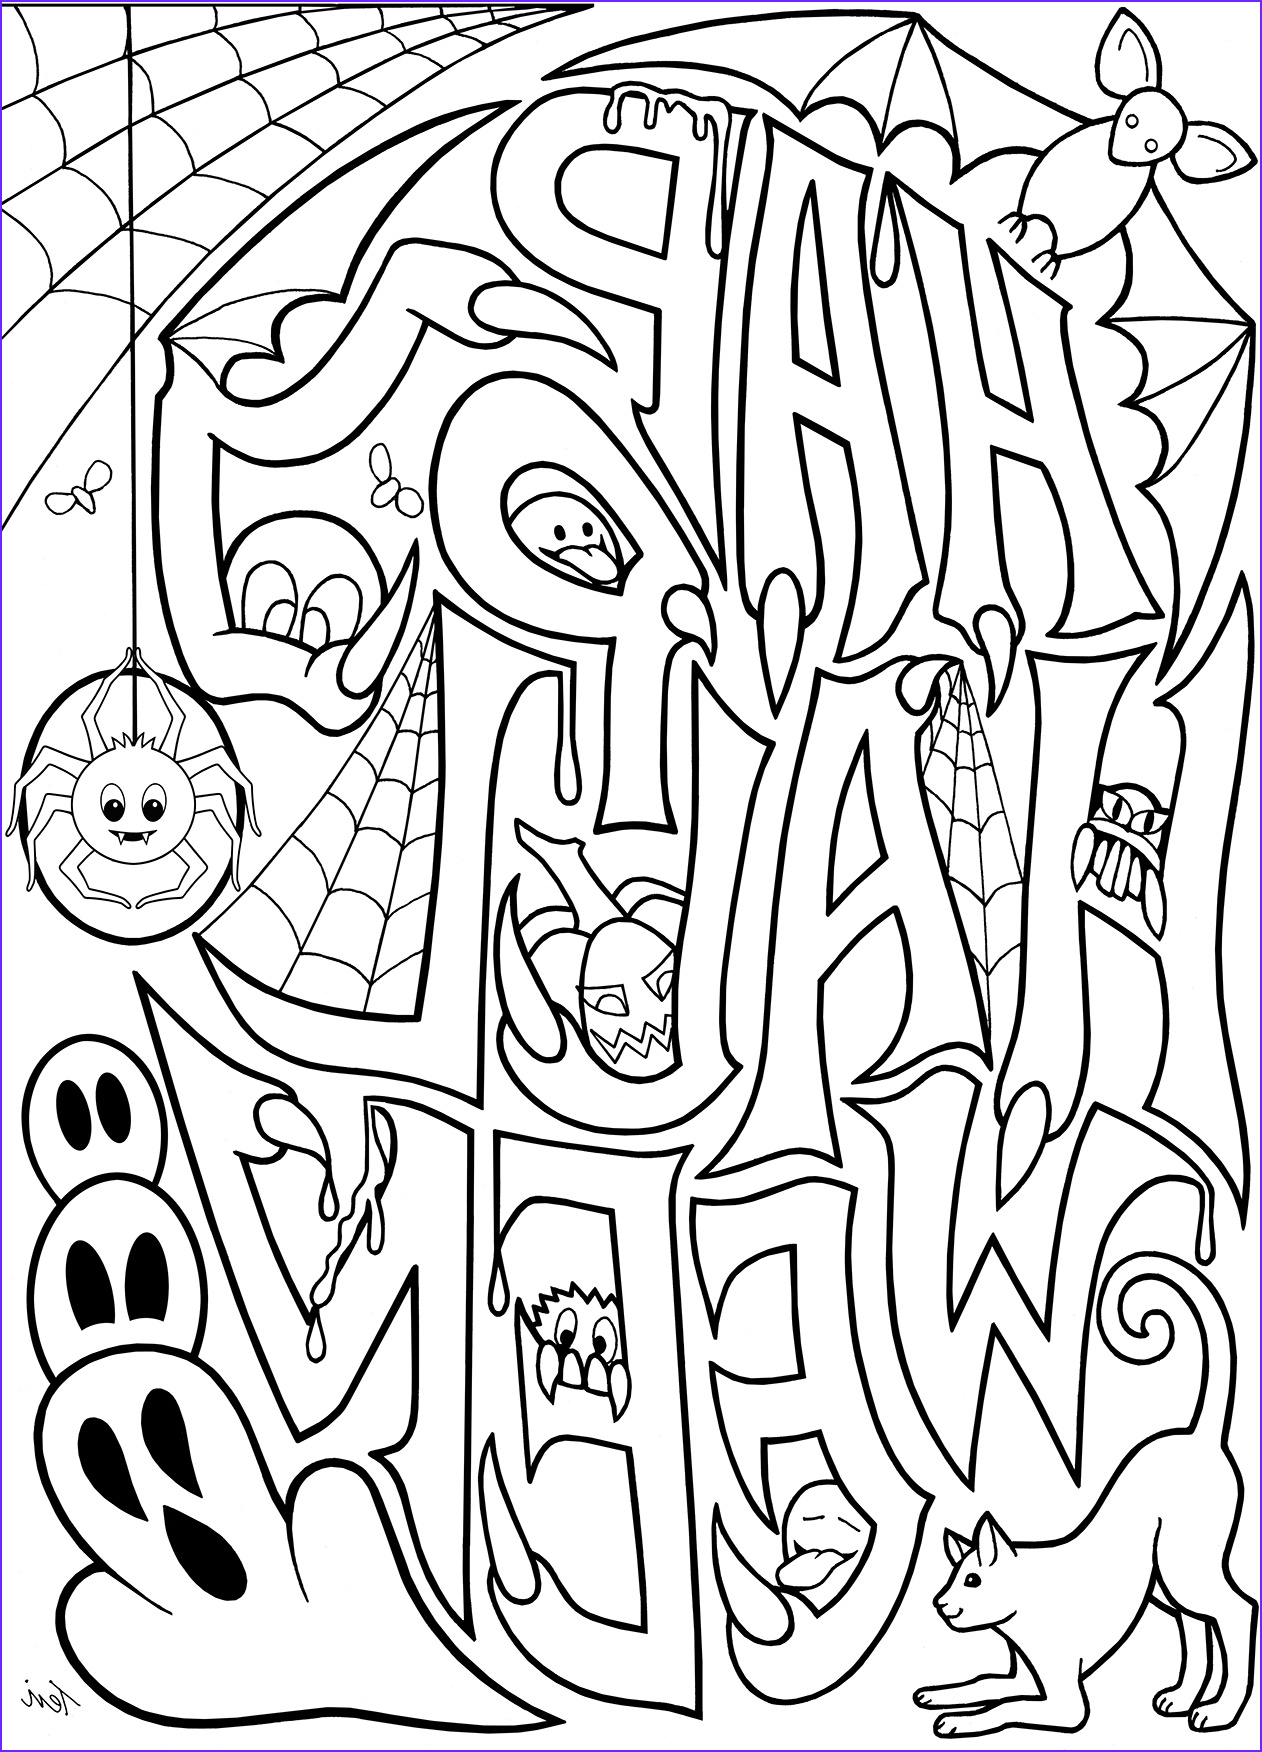 Coloring Halloween Inspirational Photography Free Adult Coloring Book Pages Happy Halloween by Blue